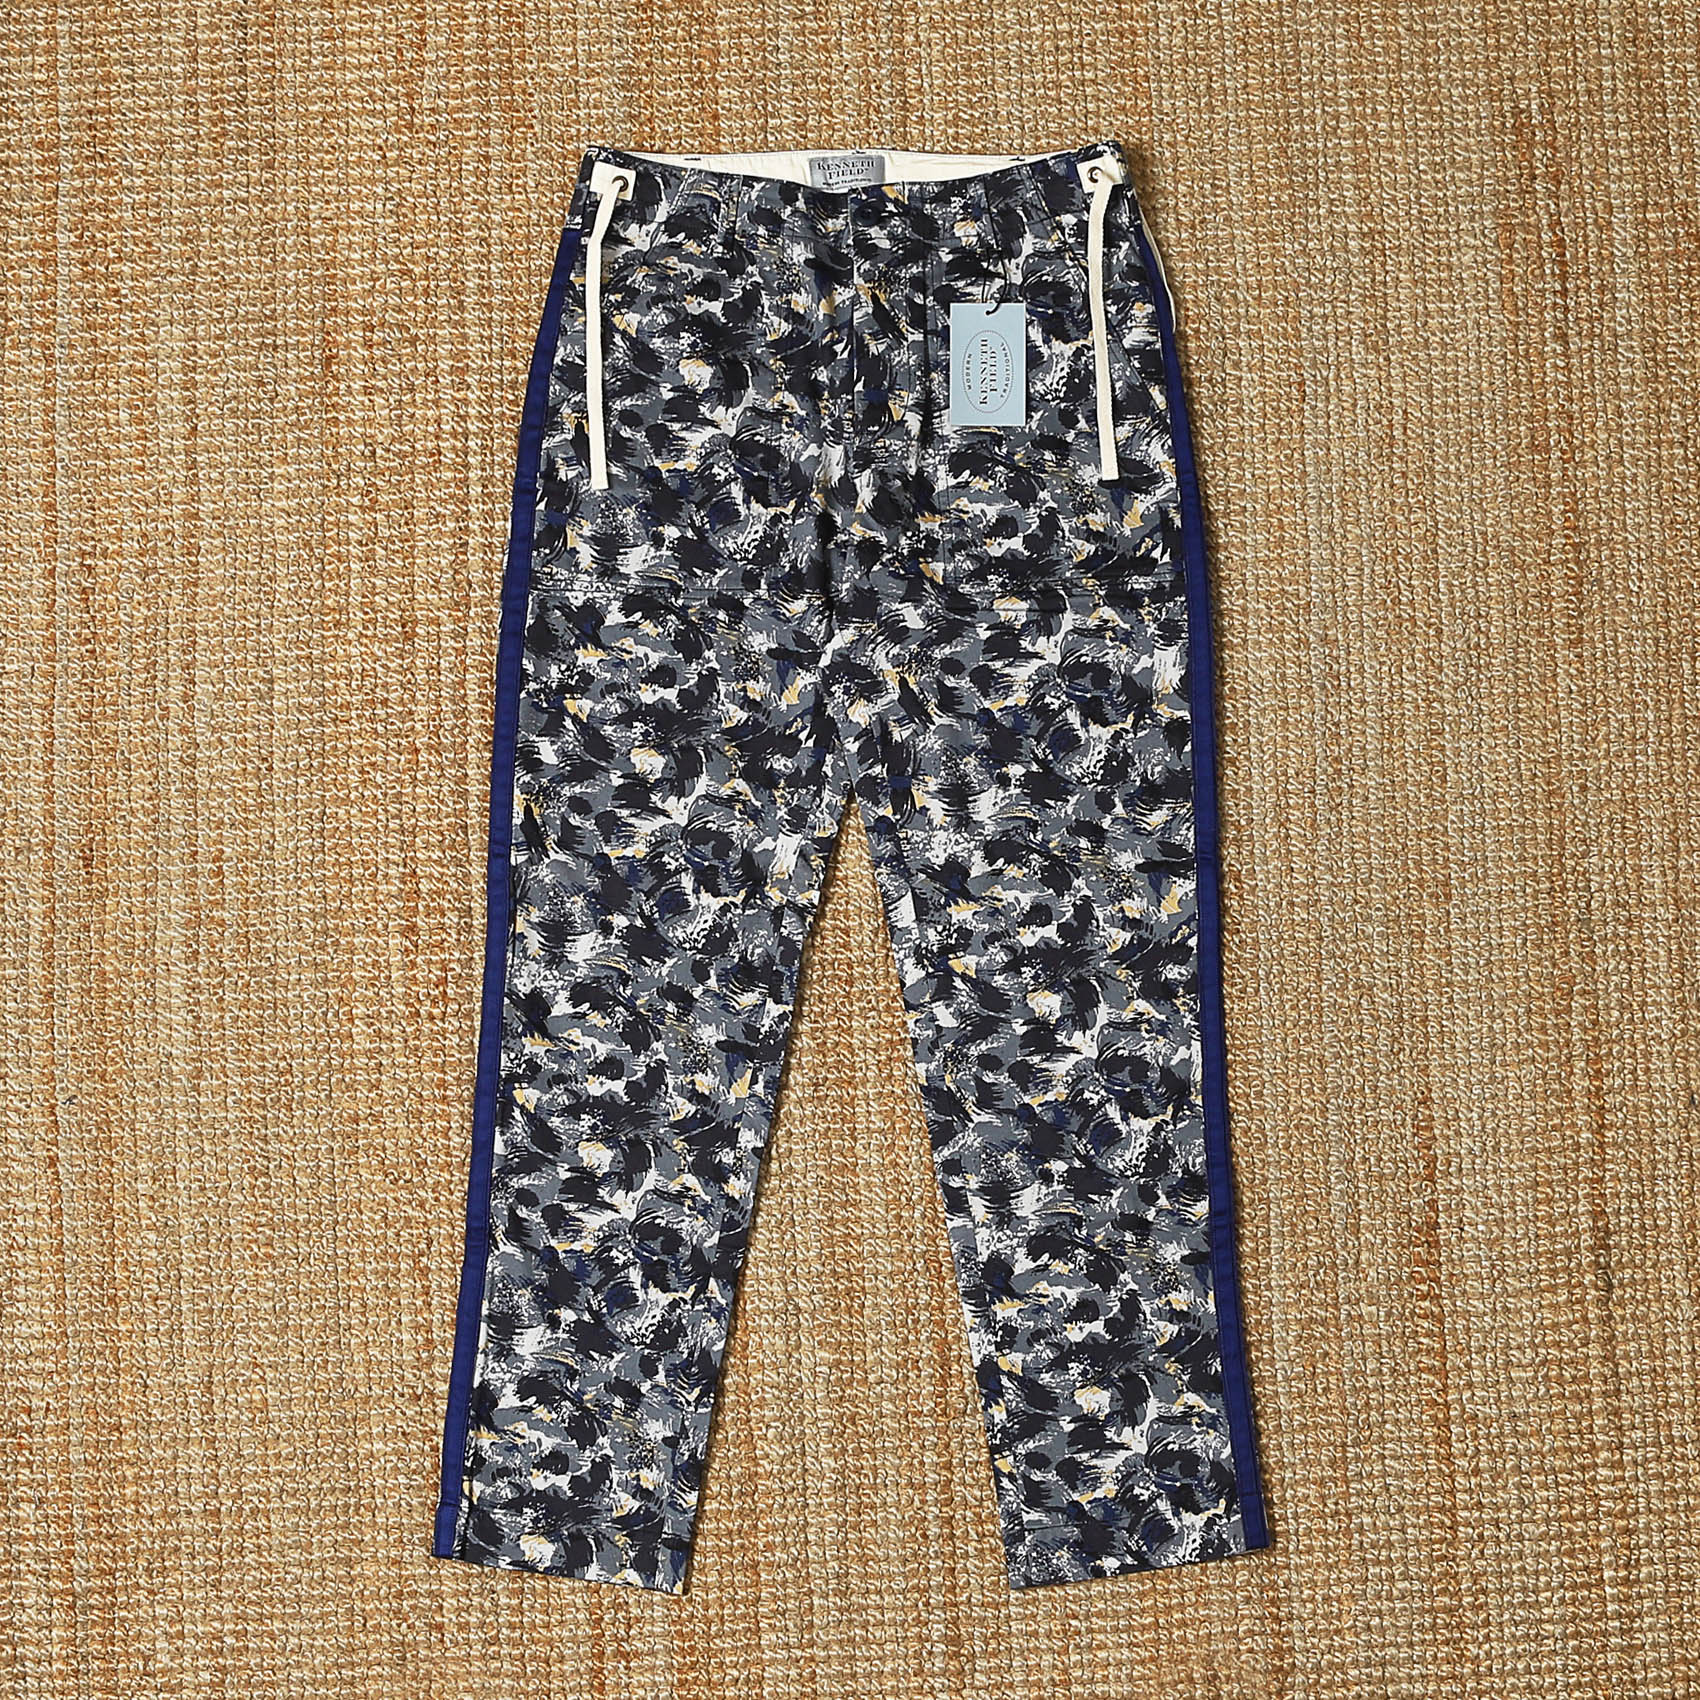 KENNETH FIELD CEREMONY TROUSER - PAINT NAVY